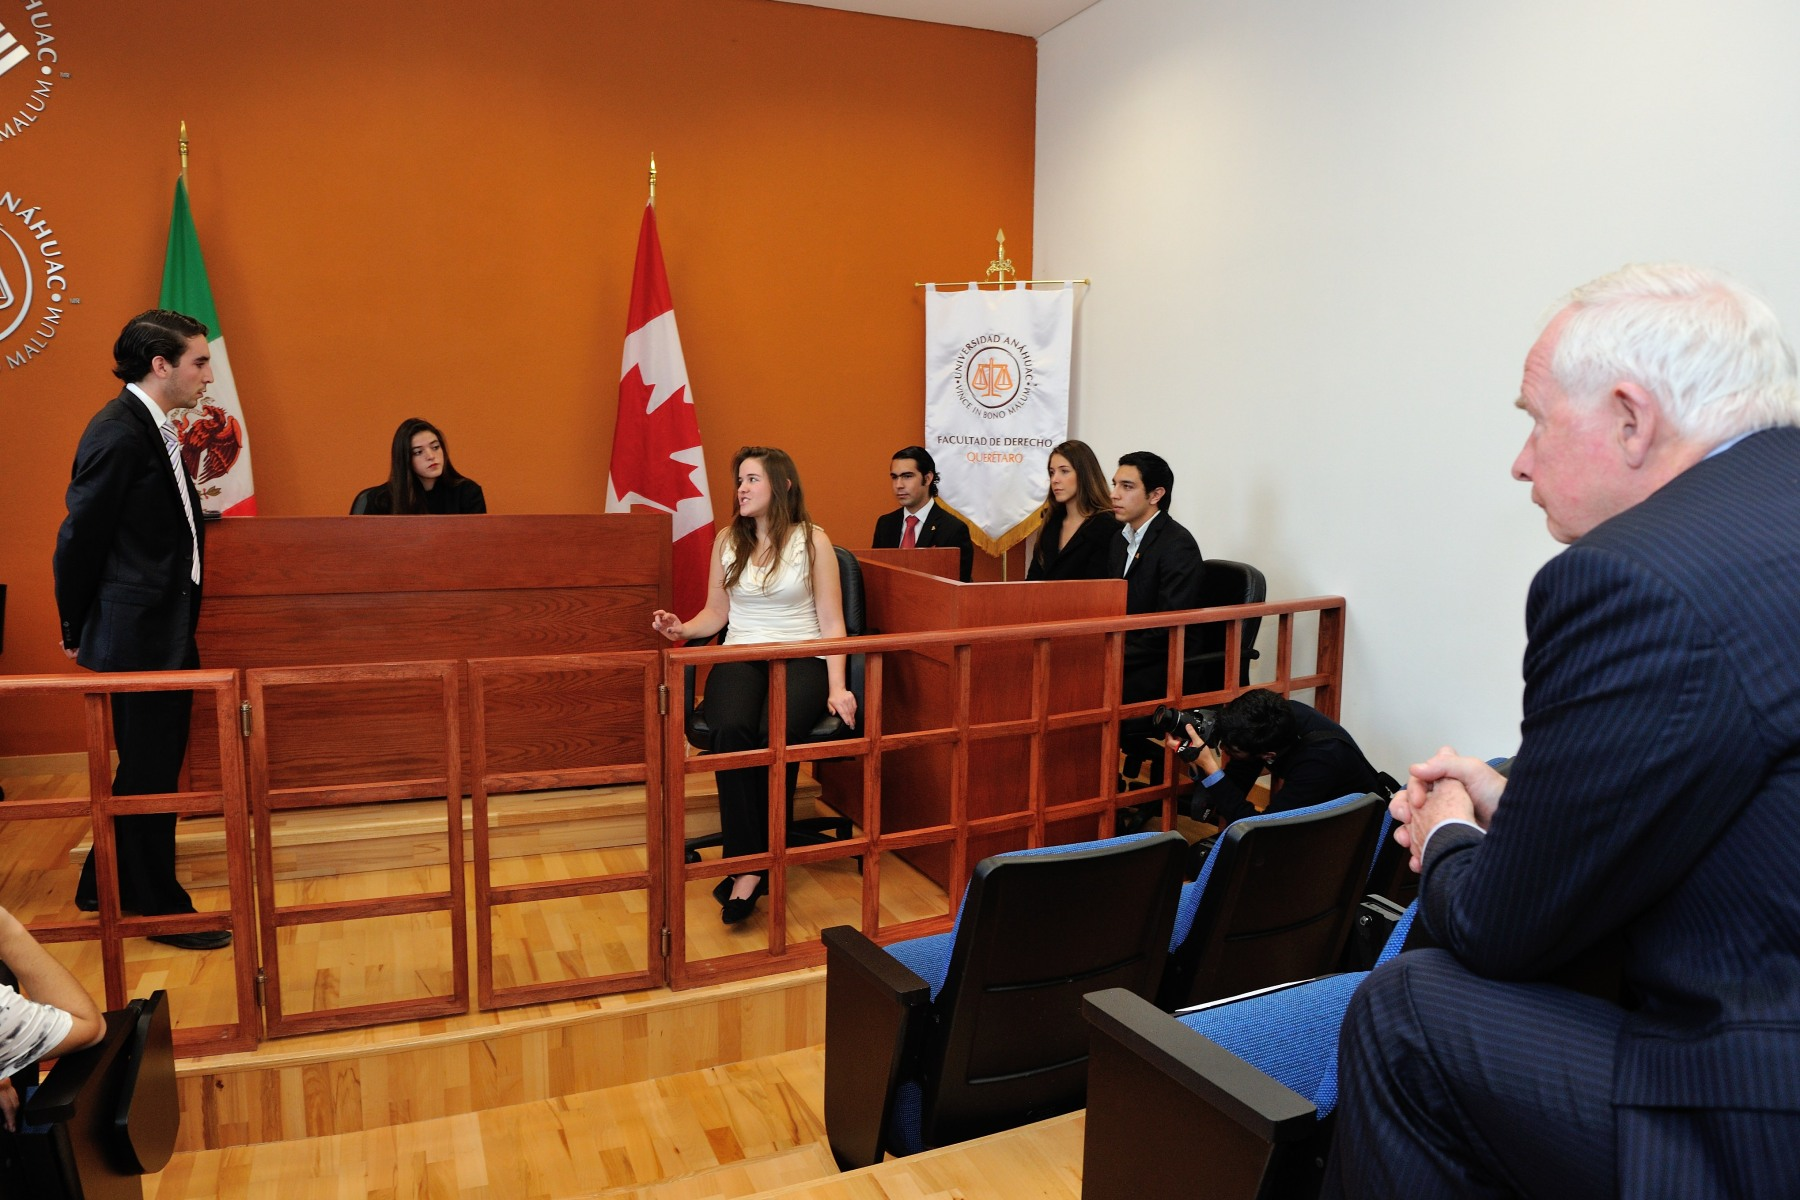 The Governor General took a short tour of Anáhuac University, during which he saw the law school's mock courtroom.